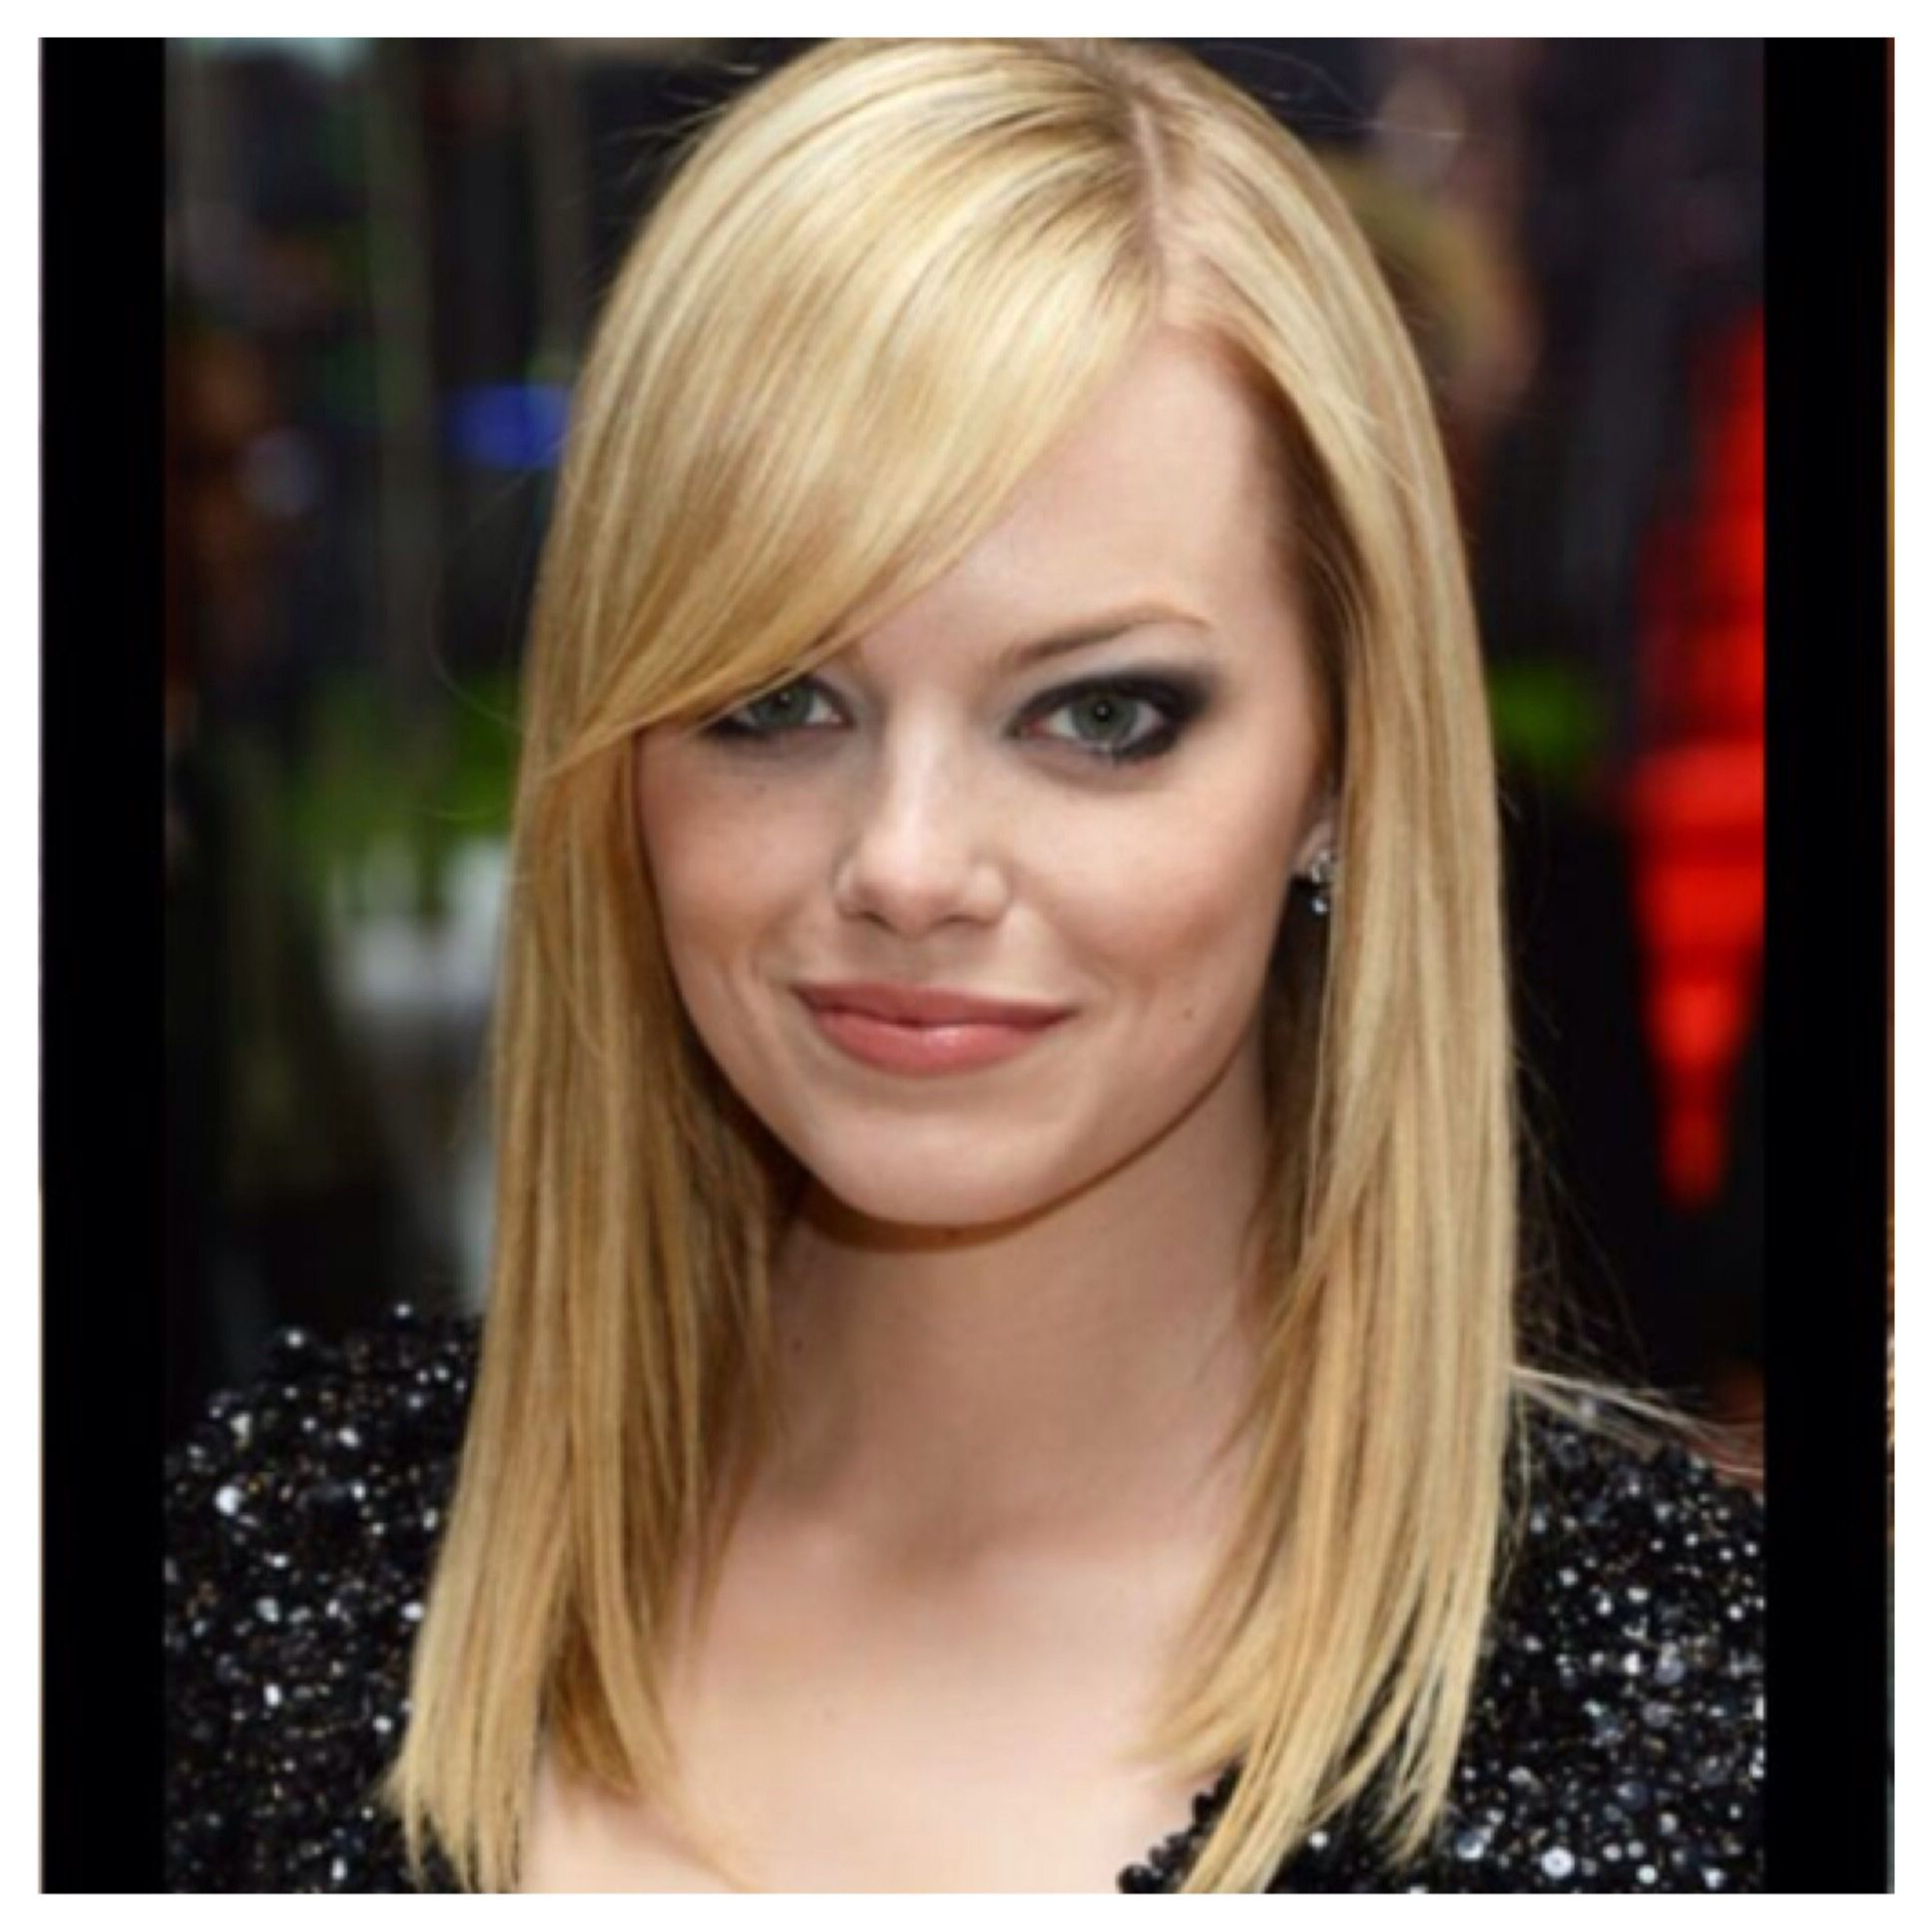 Side Bangs, Fringes And Make Up Ideas In Widely Used Side Bangs Medium Hairstyles (View 12 of 20)